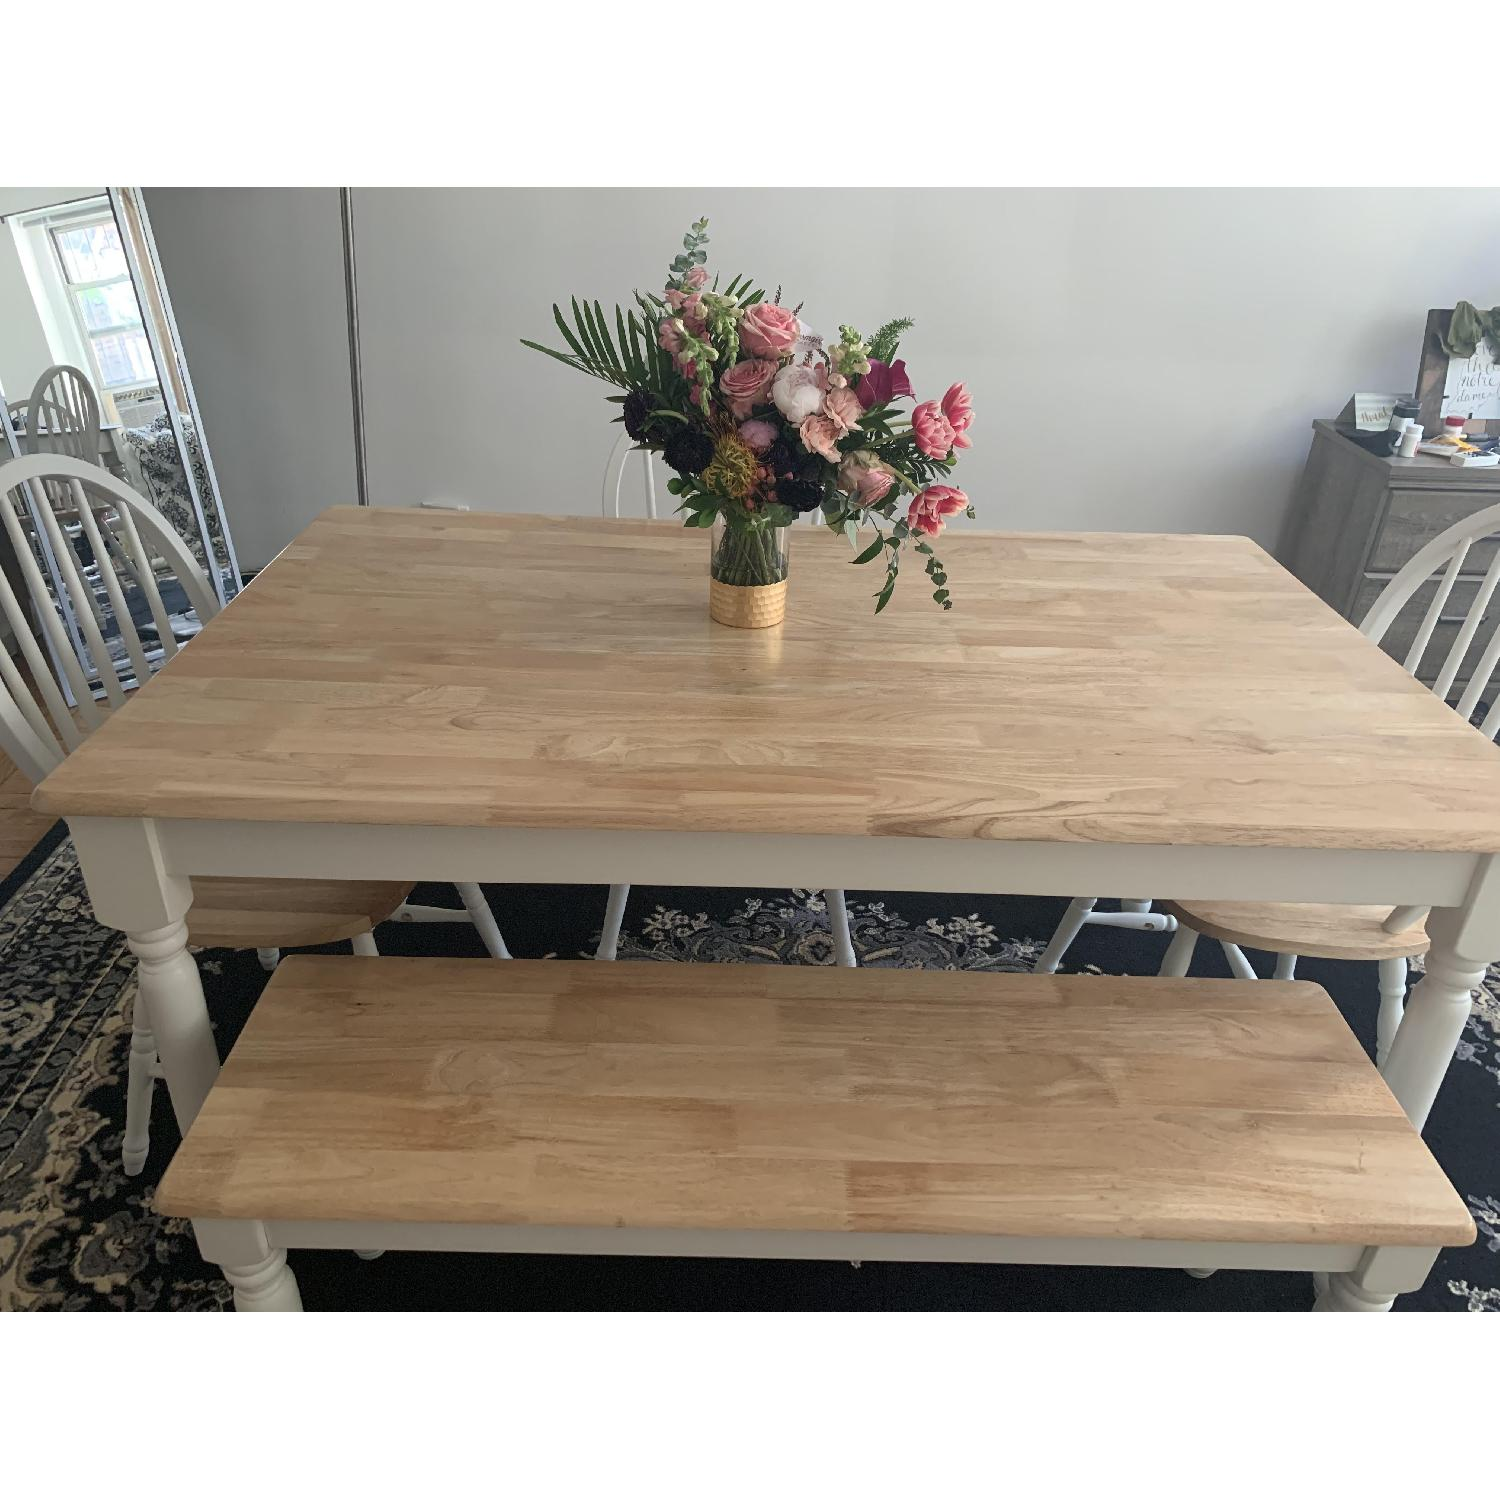 Better Homes & Gardens Dining Table w/ 1 Bench & 3 Chairs - image-2